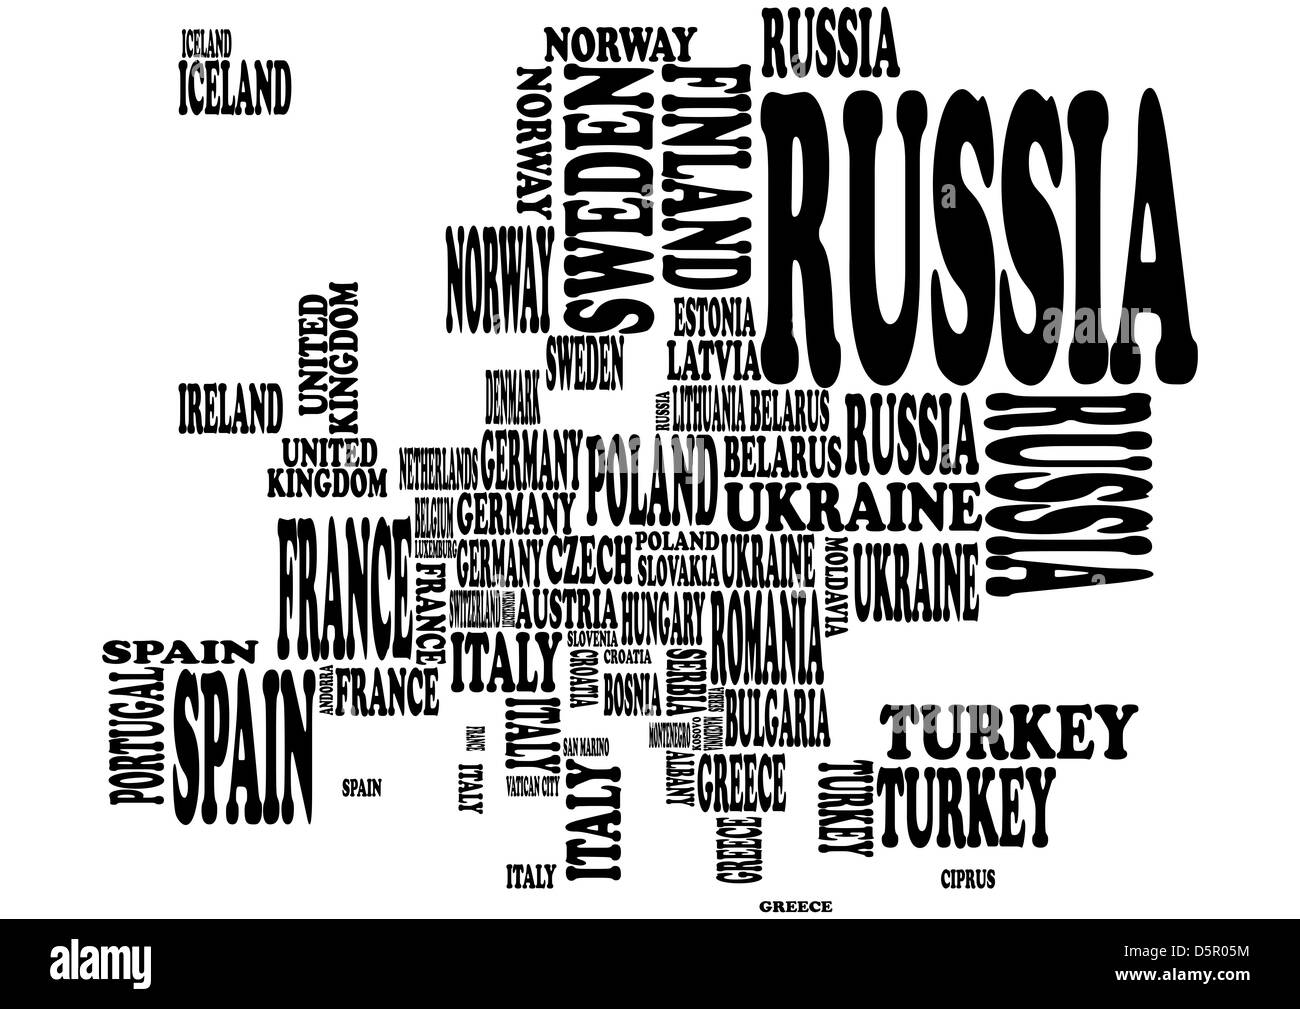 European Map With Country Names.Illustration Of Europe Map With Country Name Stock Photo 55209440